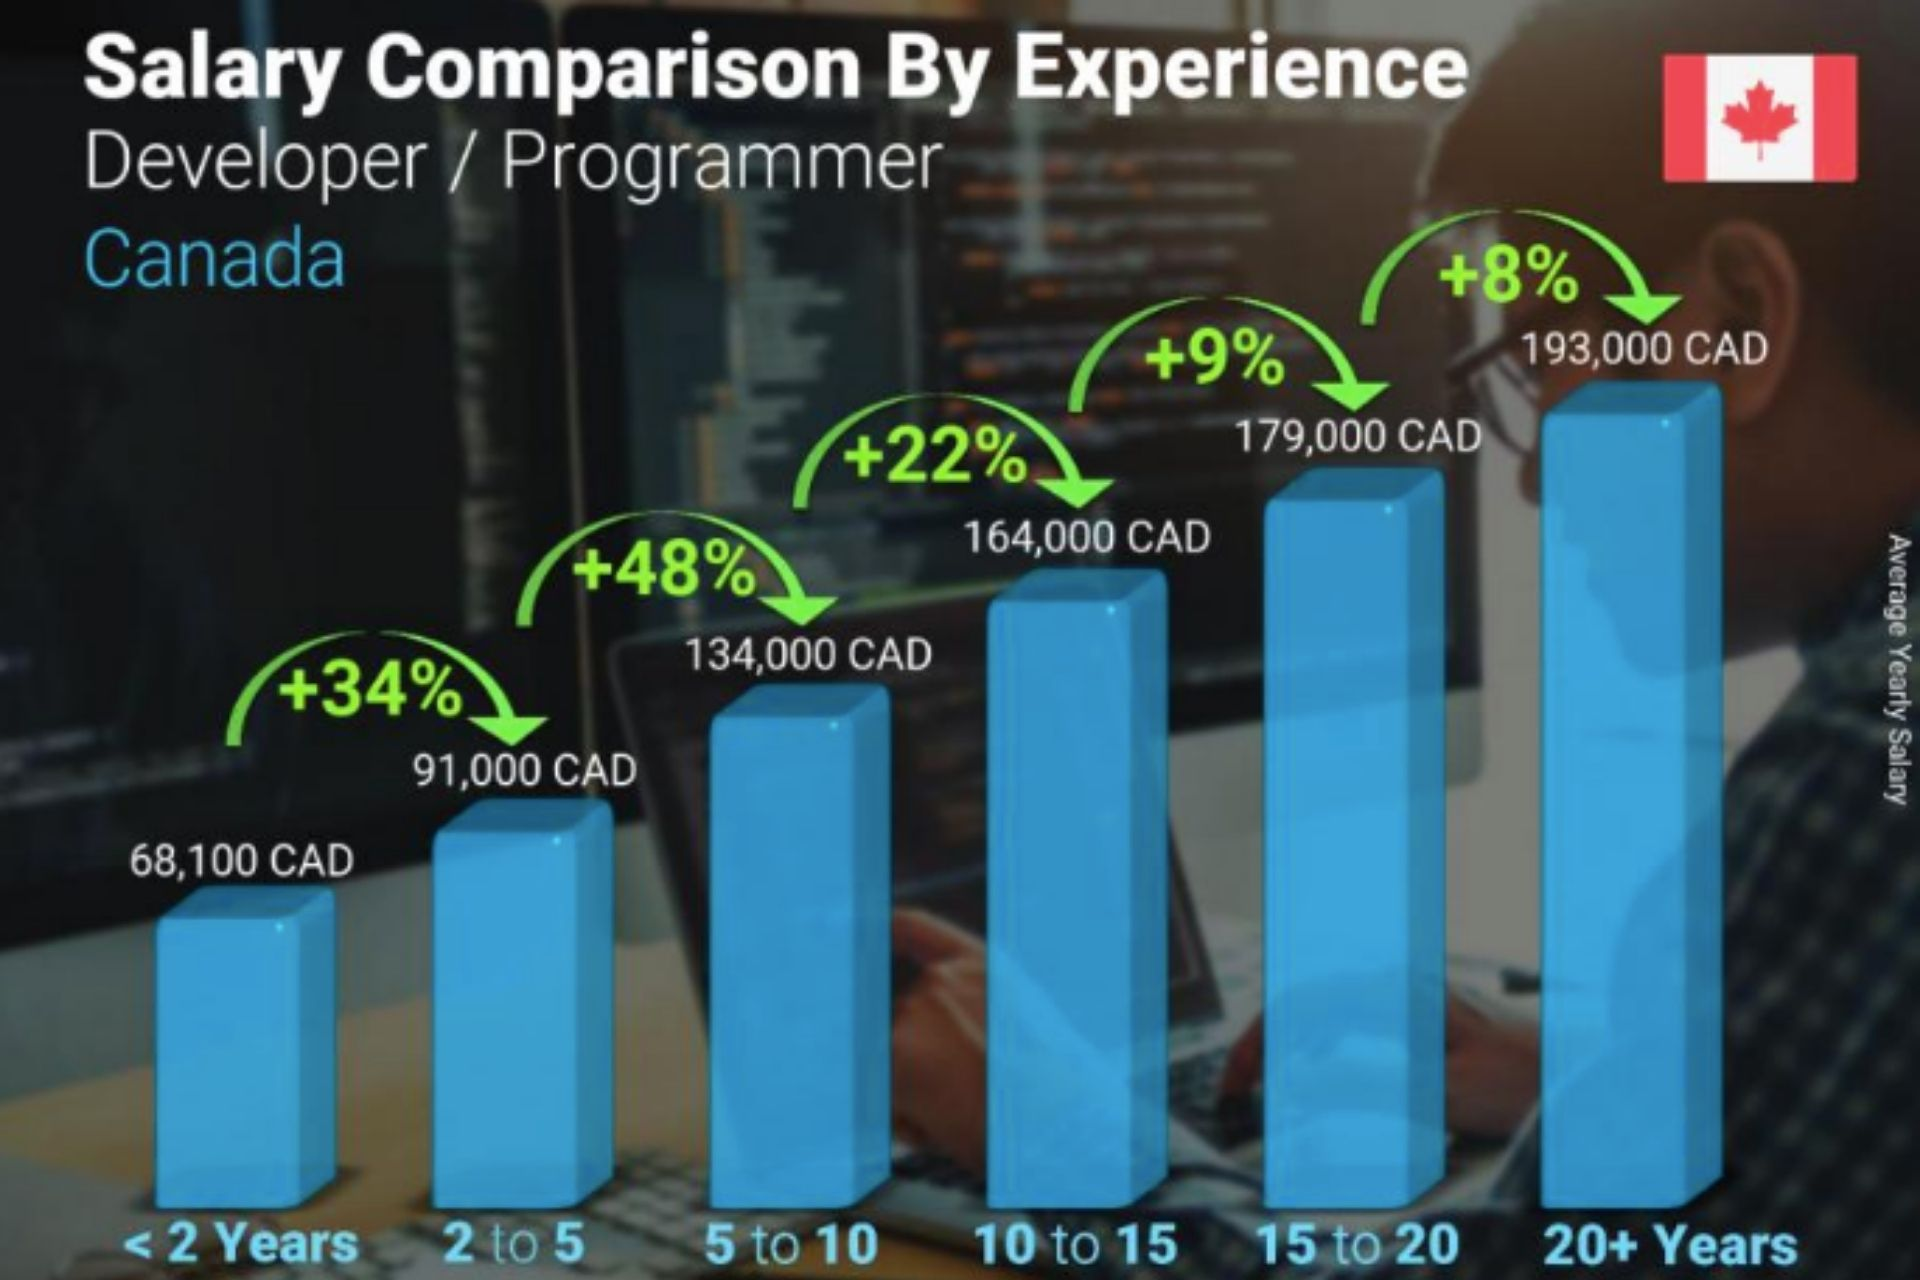 Back End Developer Recruiter - A graph showing annual Developer salary comparison by years of experience